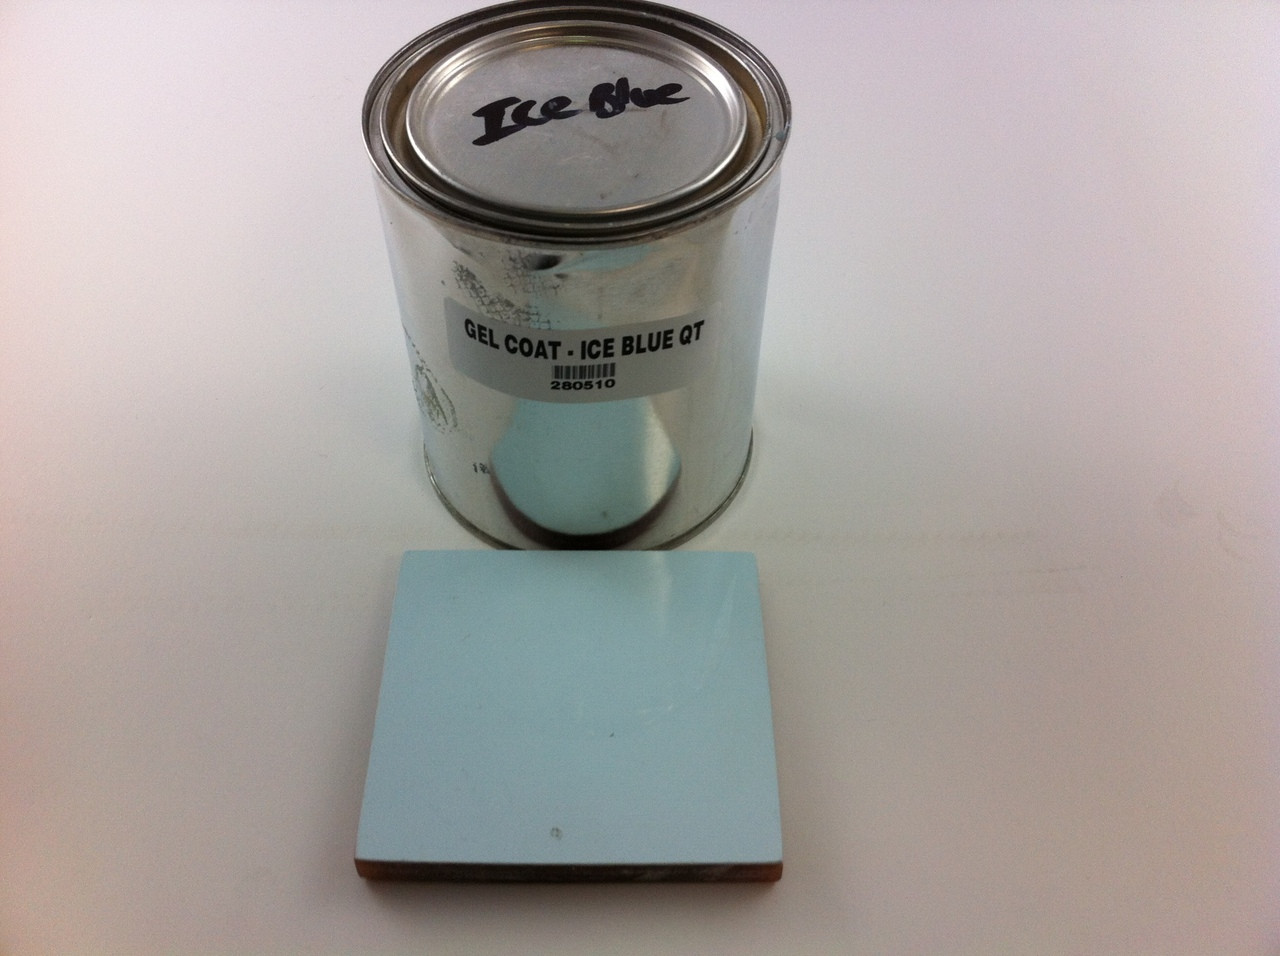 Parker Gel Coat Ice Blue With Wax Quart Cecil Marine Fuel Filter Image 1